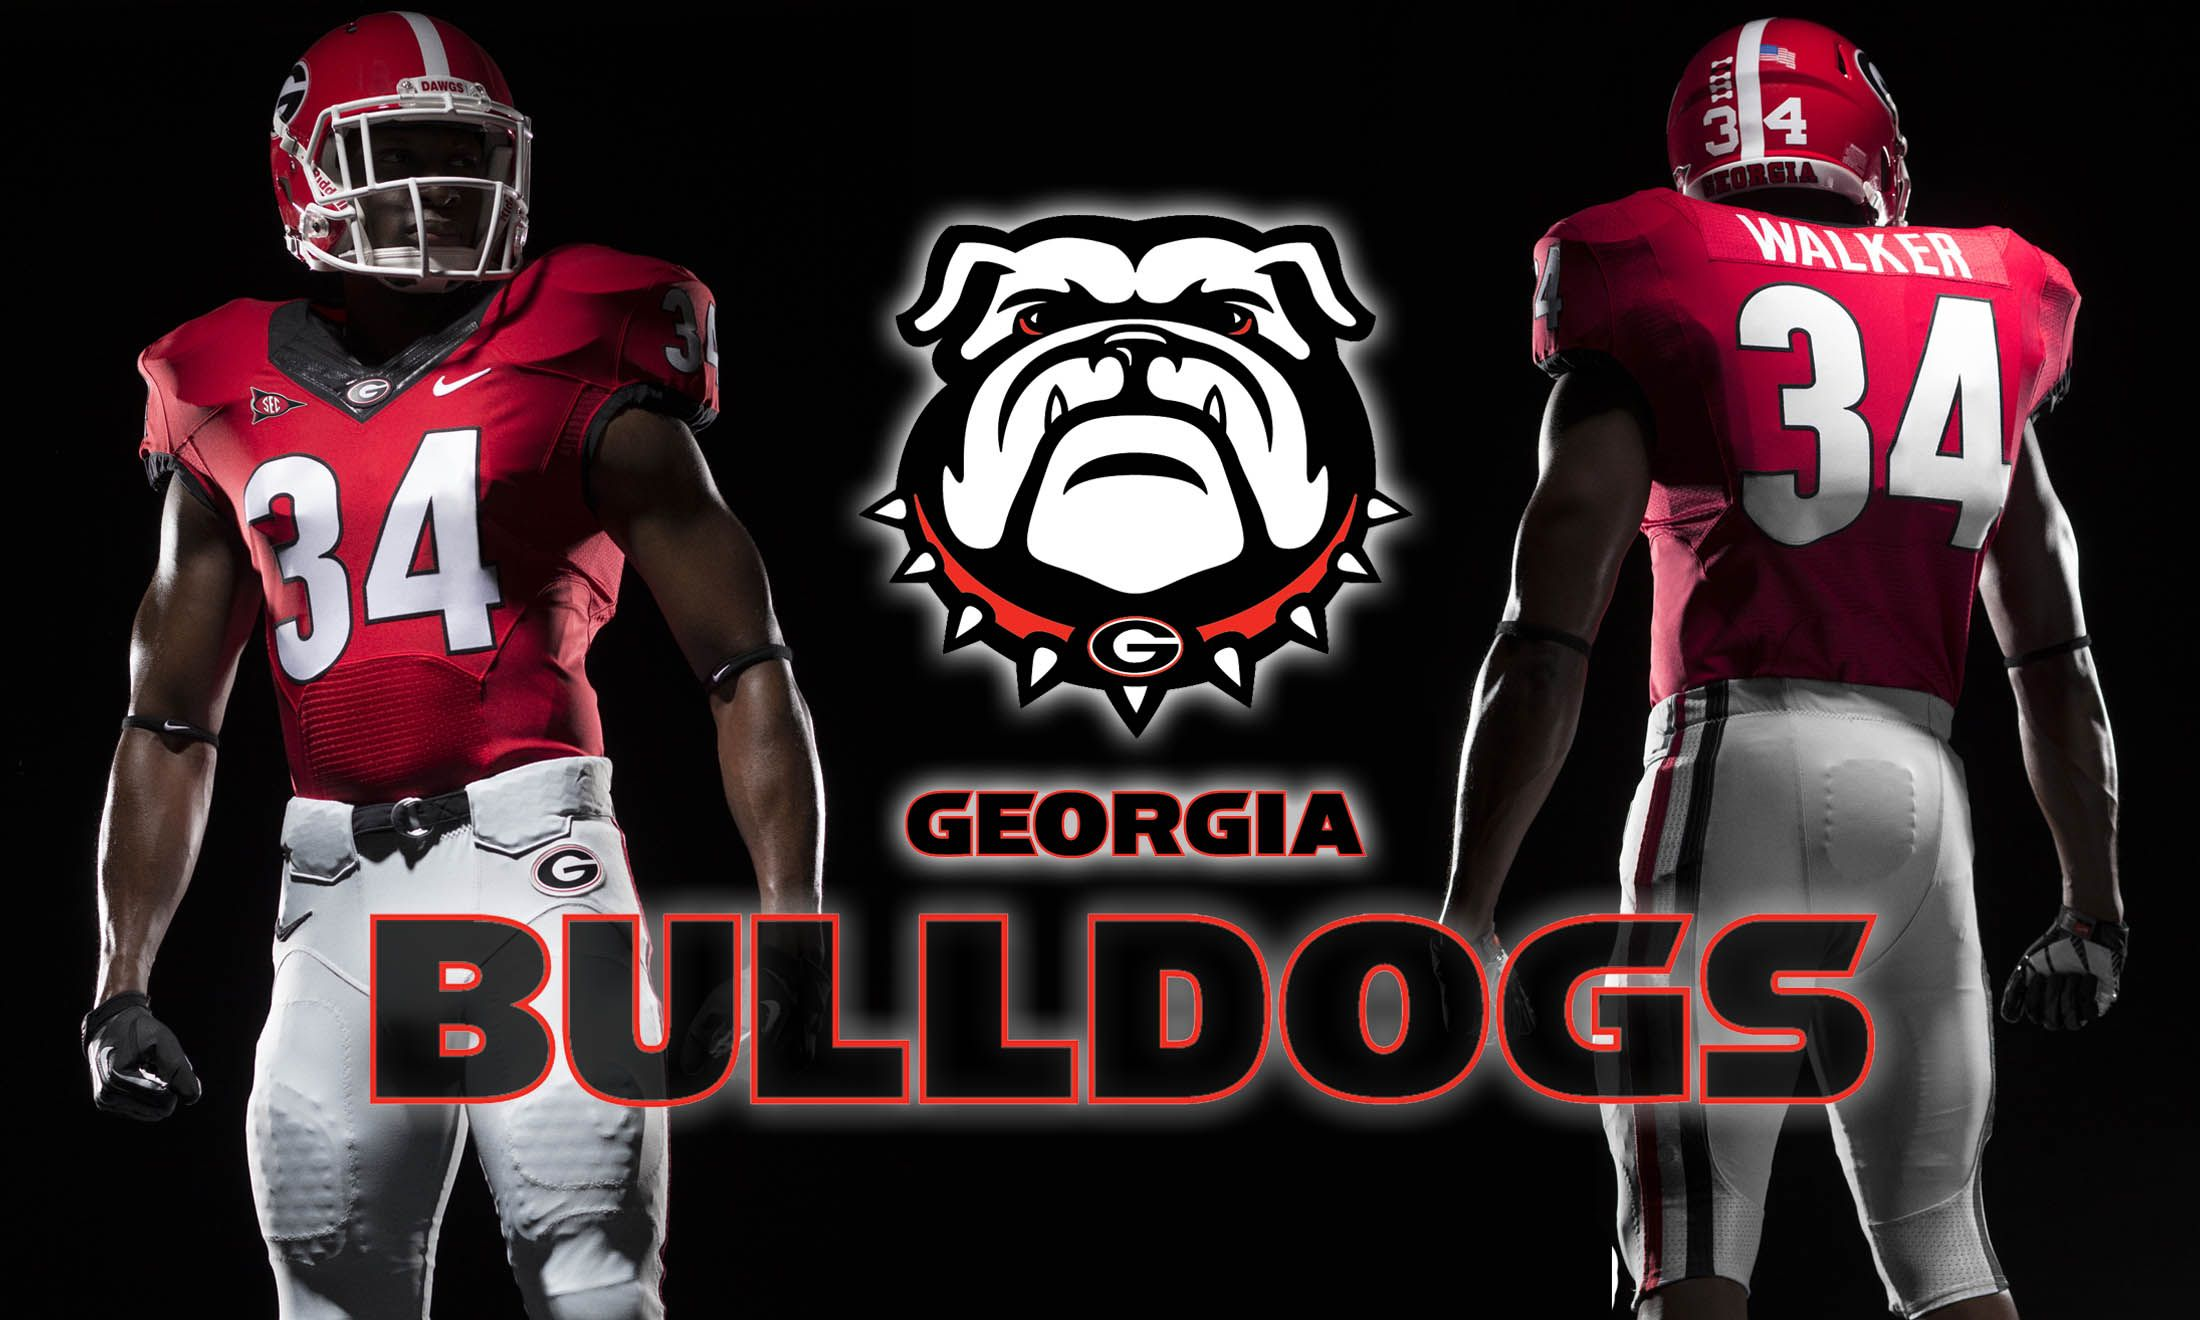 HD Bulldogs Wallpaper bulldogs football